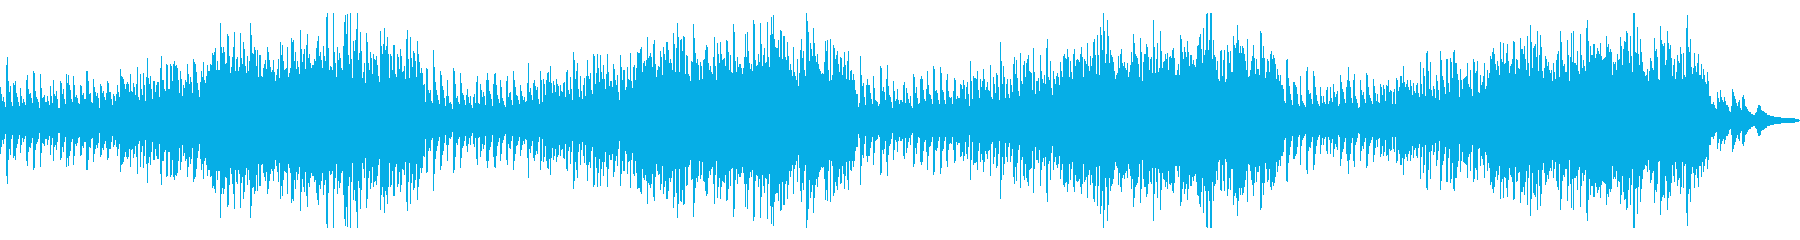 Christmas! Cute and bright orchestra's reproduced waveform